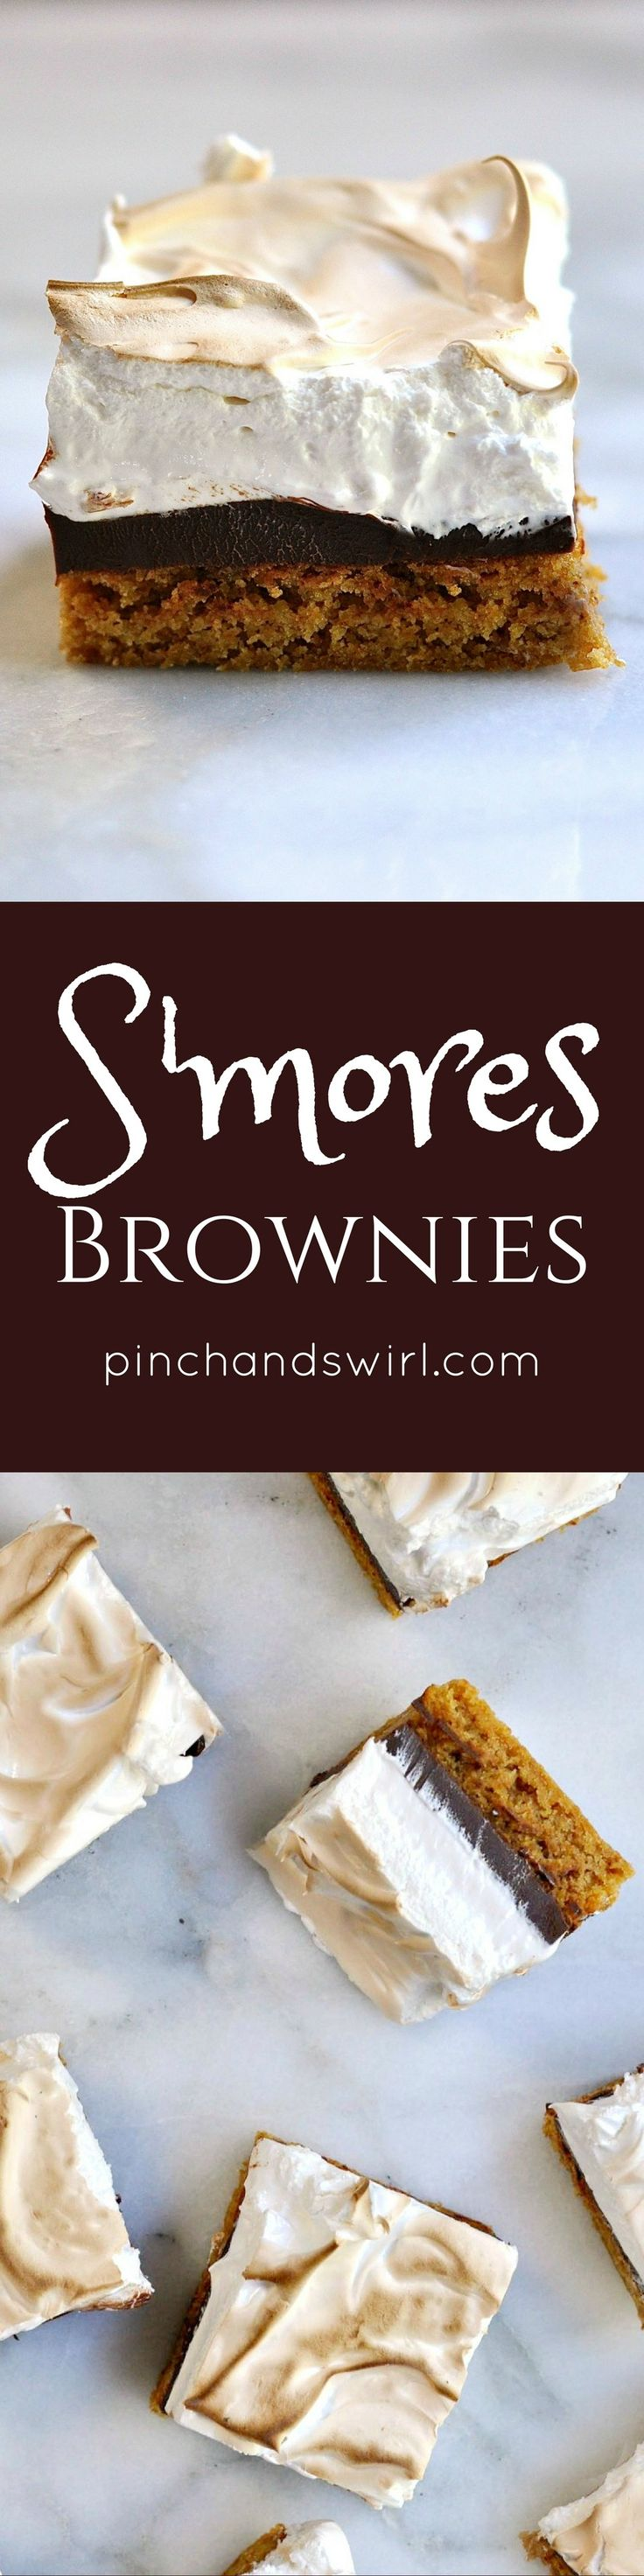 These S'mores Brownies start with a chewy blondie brownie layer that tastes like a buttery, honey kissed graham cracker followed by a thick layer of creamy dark chocolate and finished with a toasted billowy smooth marshmallow meringue.